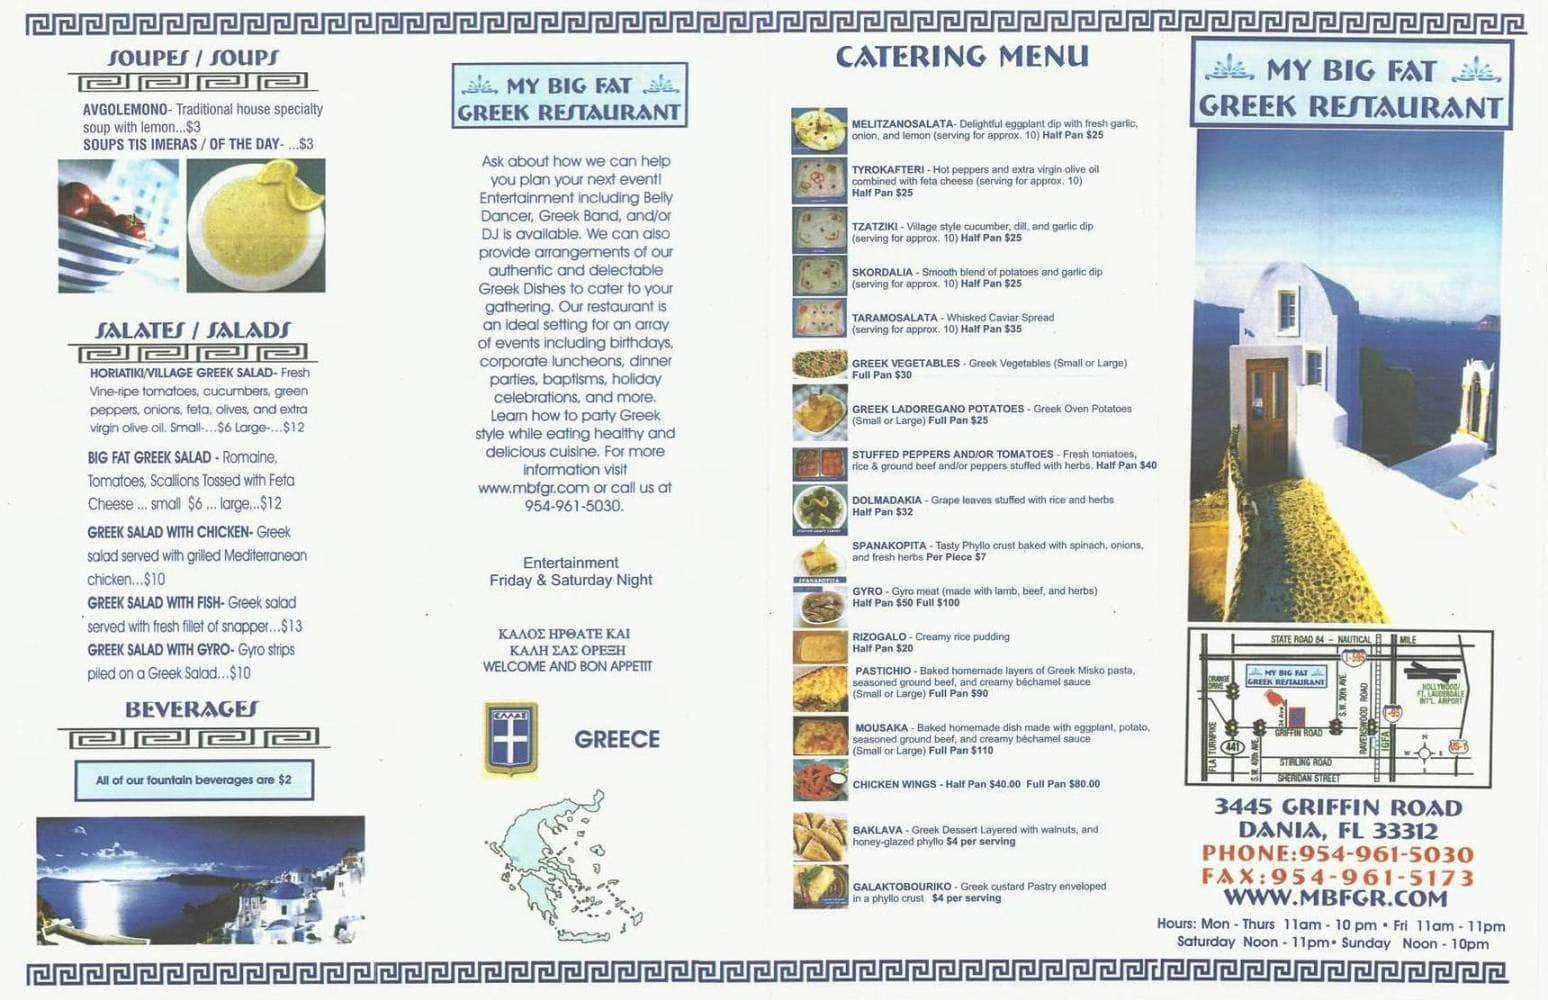 My Big Fat Greek Restaurant Menu 102